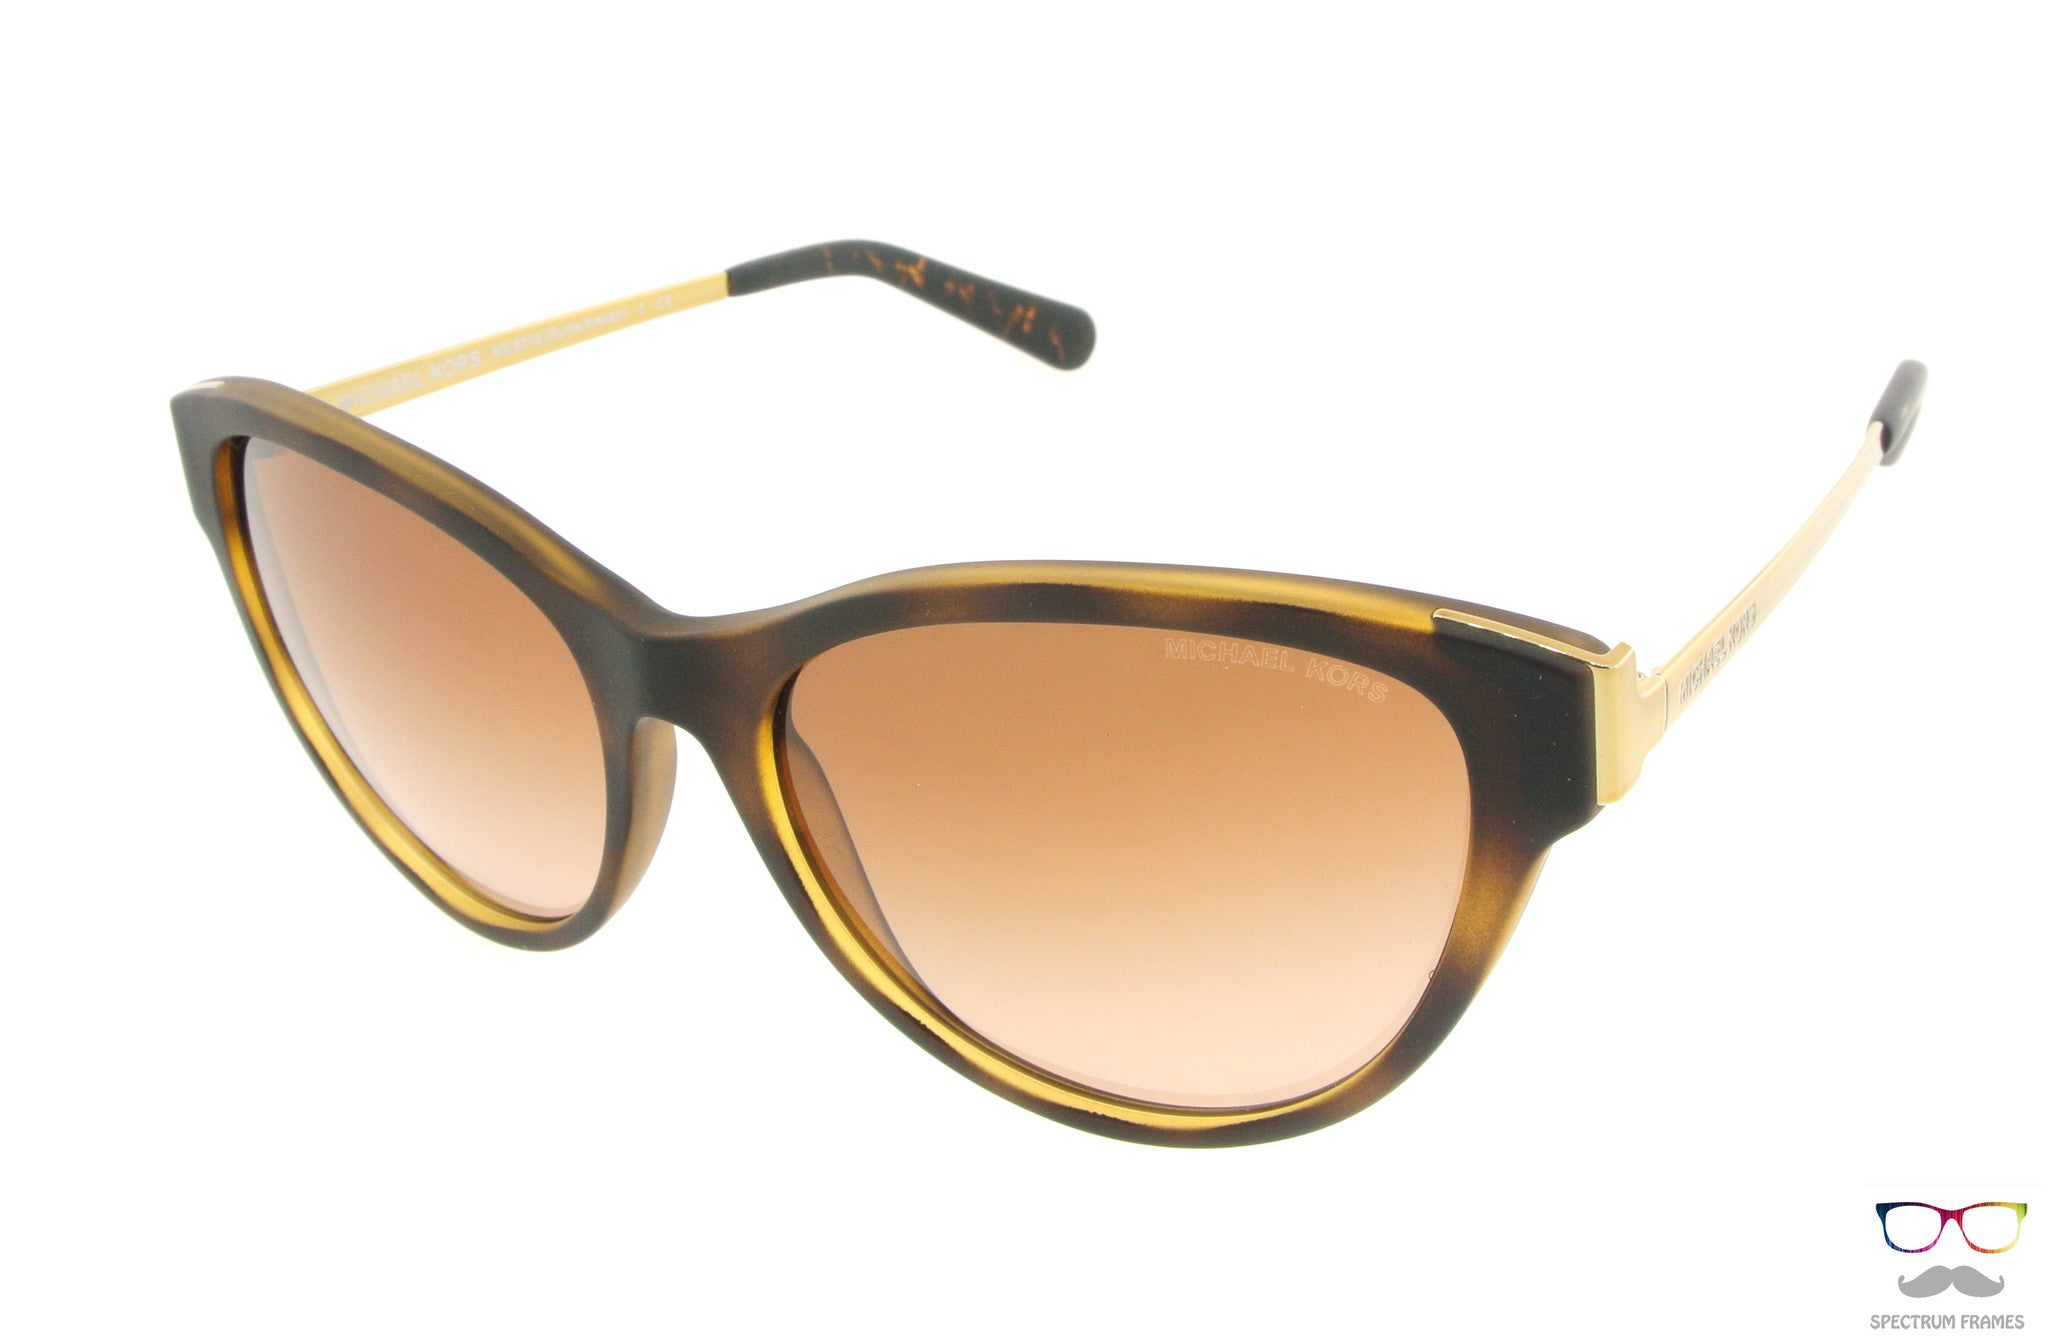 Michael Kors Sunglasses 6014 302113 Gold & Brown with Gradient Brown ...